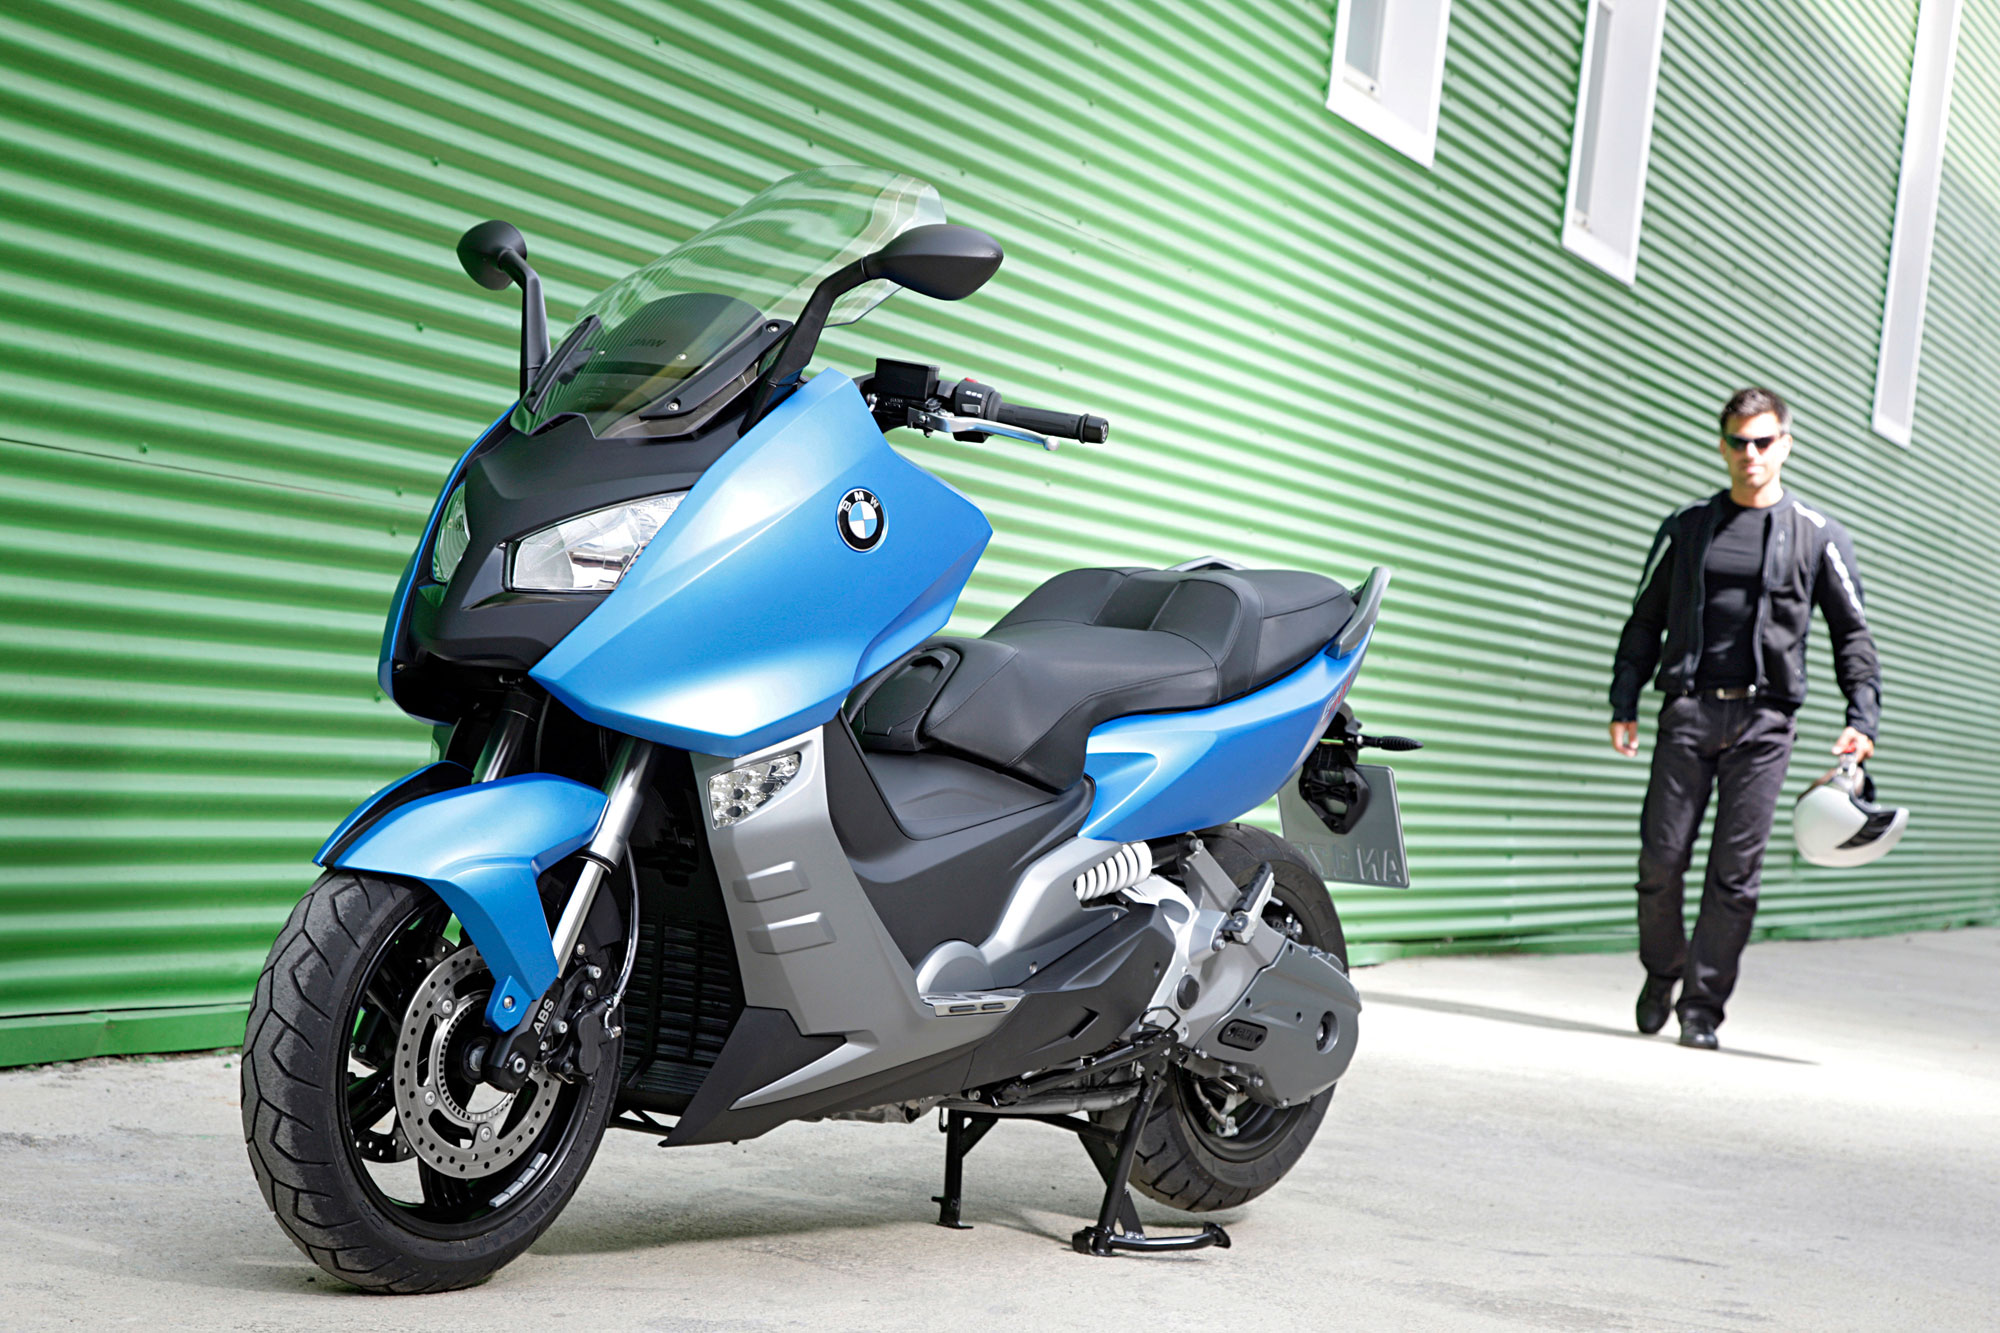 Remarkable 2012 Bmw C600 Sport Review Gmtry Best Dining Table And Chair Ideas Images Gmtryco